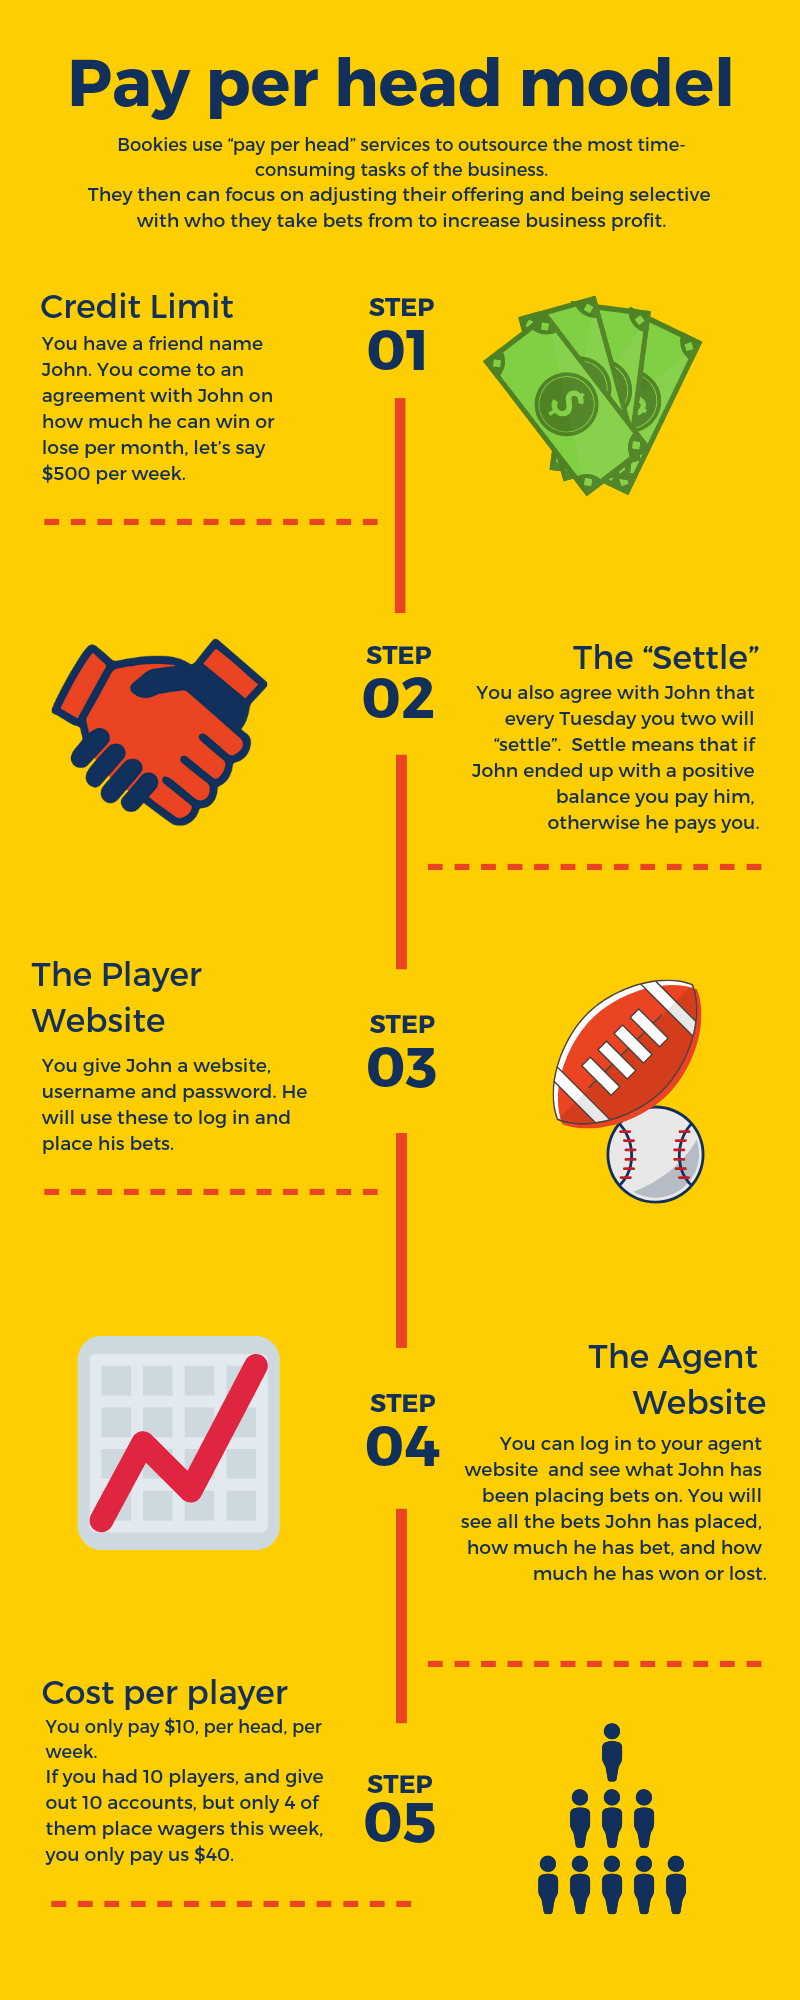 [Infographic] How to be a bookie using pay per head services